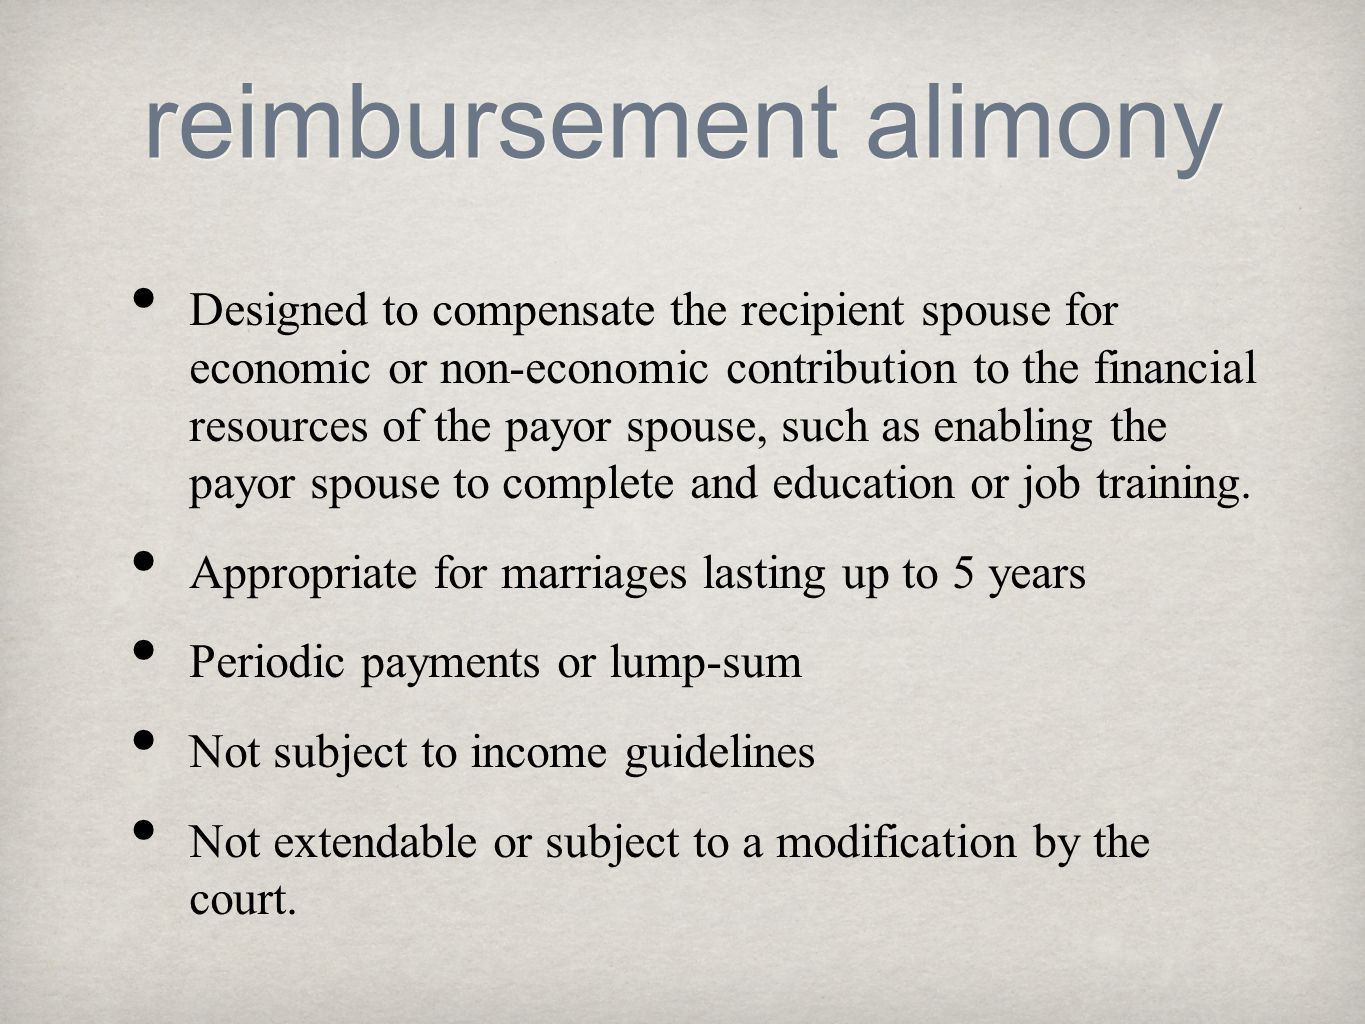 reimbursement alimony